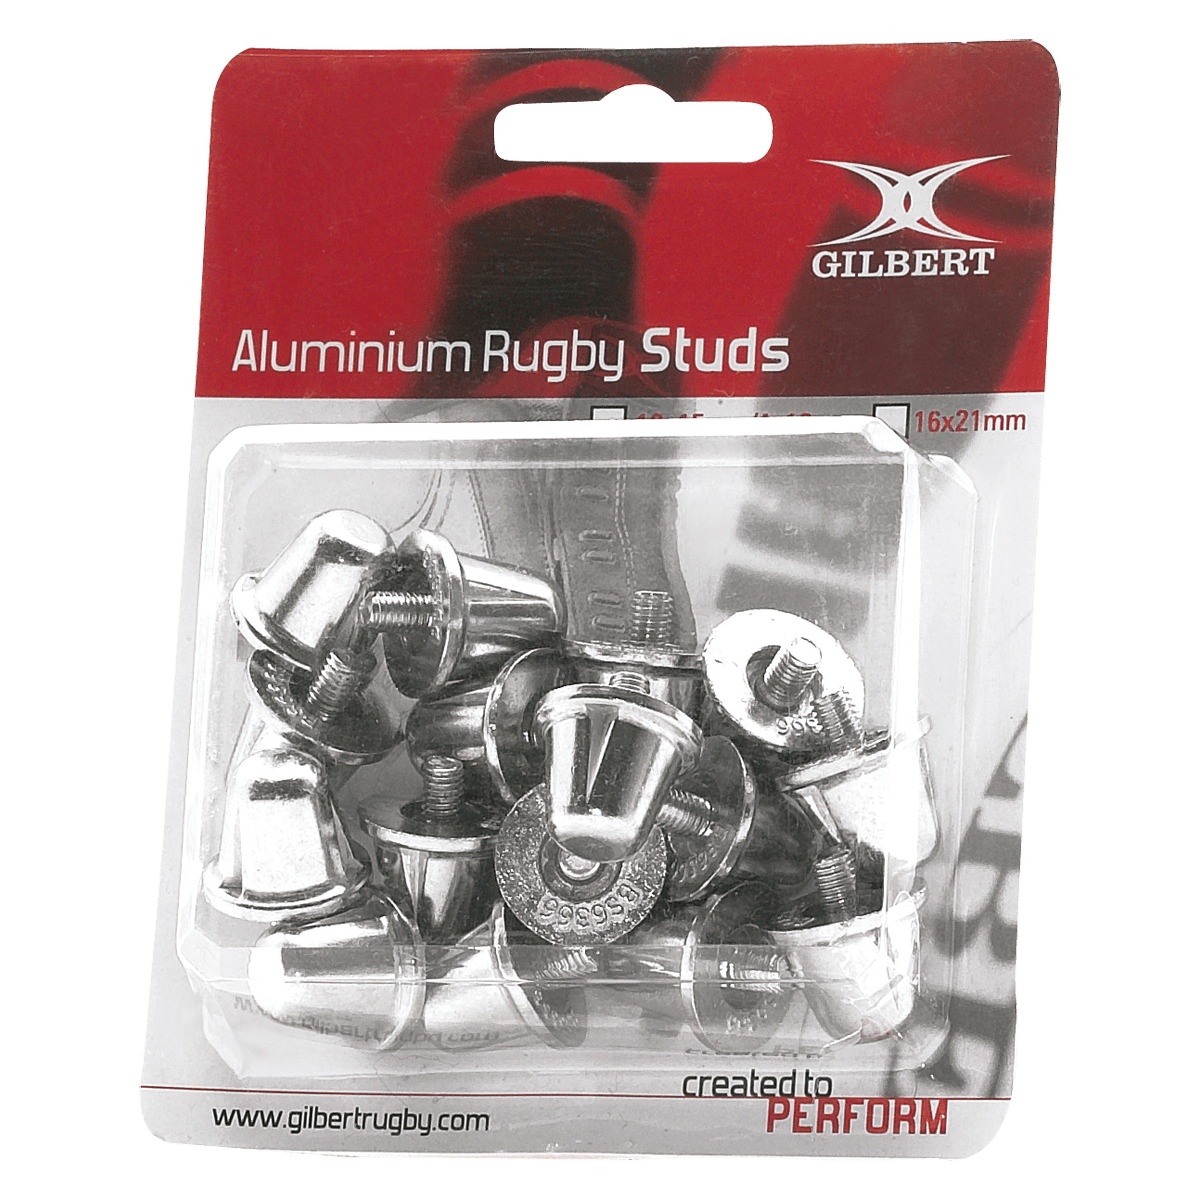 Gilbert Aluminum Replacement Rugby Studs (Blister Pack)